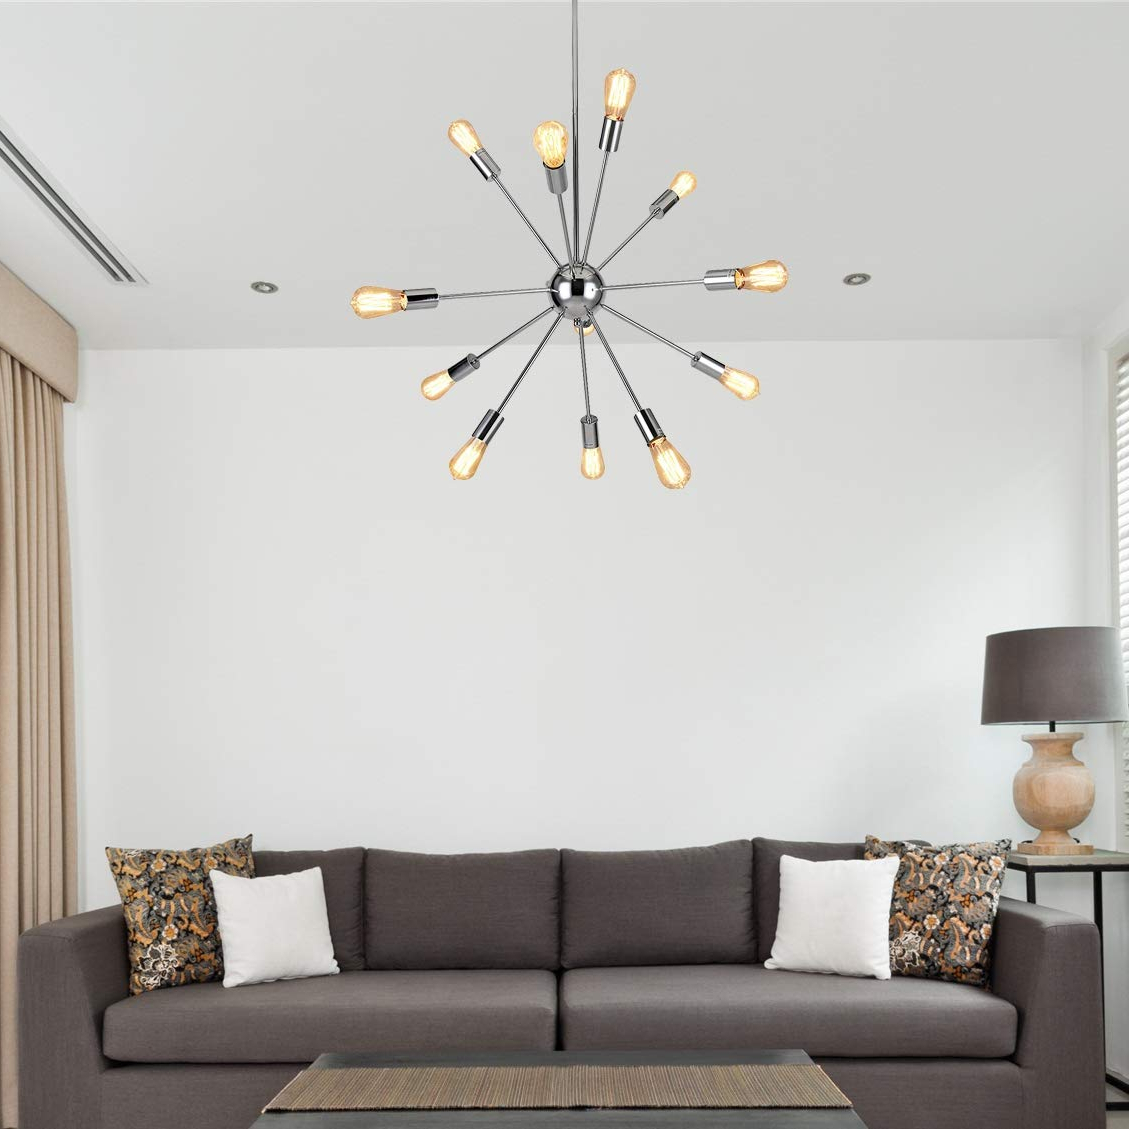 Asher 12 Light Sputnik Chandeliers Pertaining To Favorite Sputnik Chandeliers 12 Lights Modern Pendant Lighting Chrome Finished  Ceiling Light Fixture, Ul Listed (View 5 of 25)